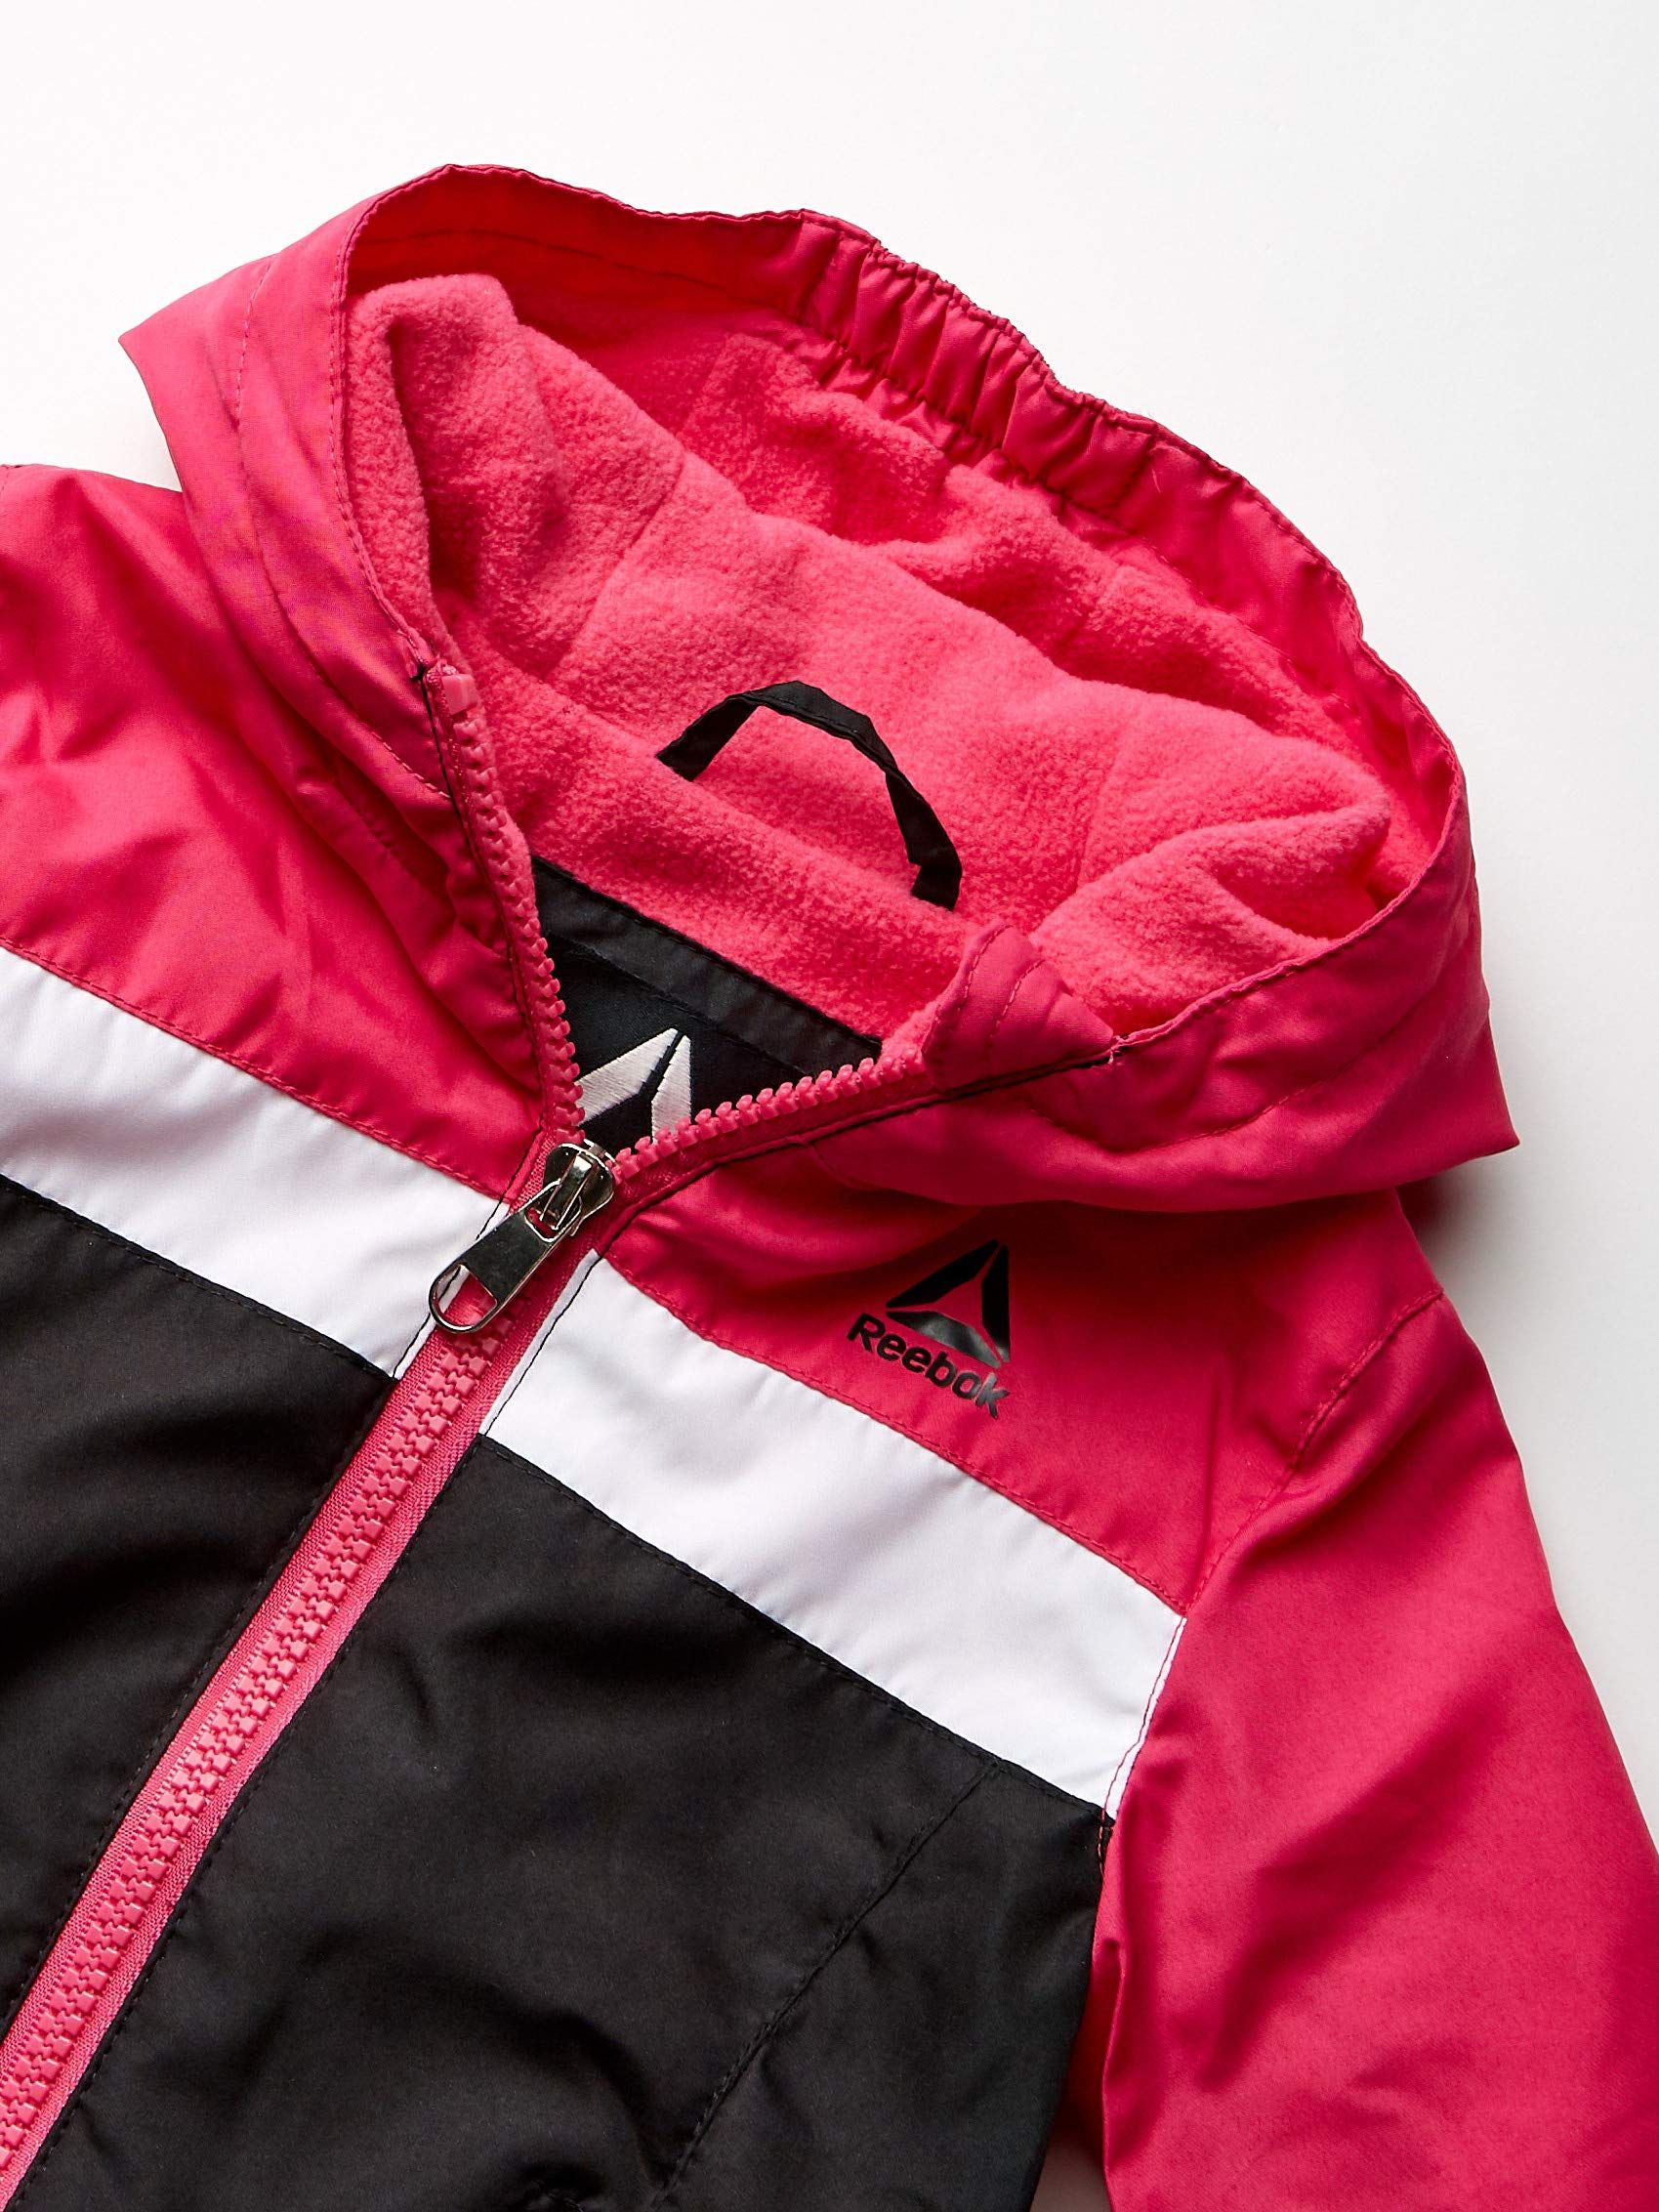 Reebok Baby Girls Active Outerwear Jacket More Styles Available Color Block Black 12m To Find Out More Browse Throu Outerwear Jackets Jackets Outerwear [ 2265 x 1699 Pixel ]